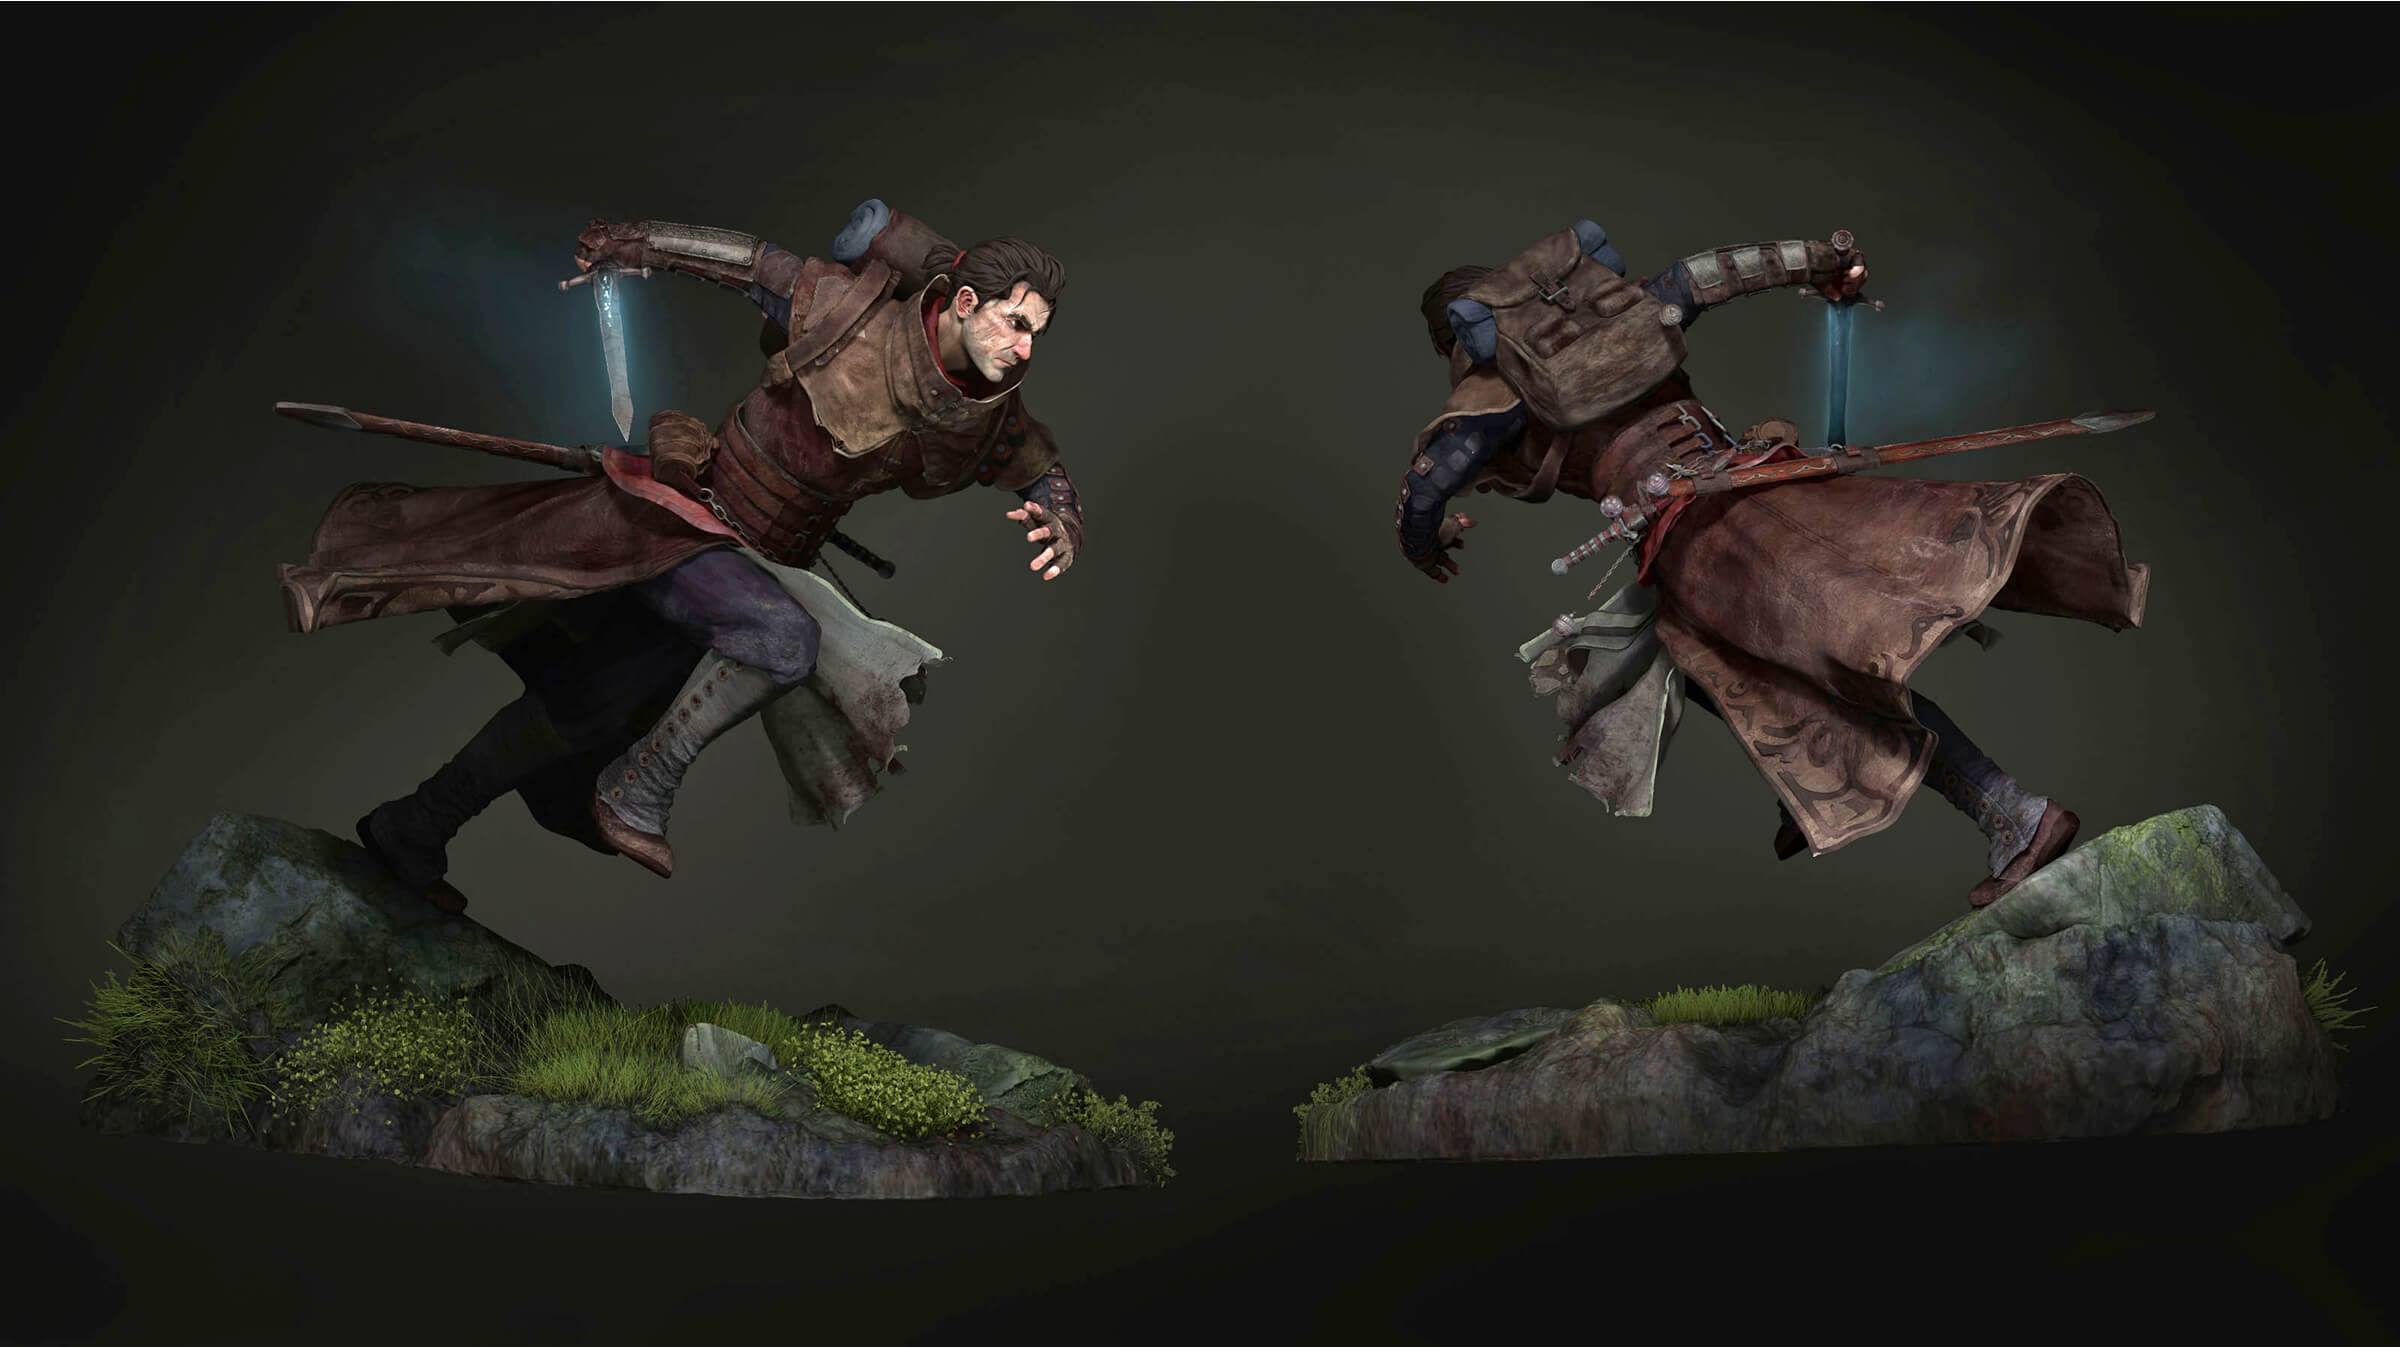 computer-generated 3D model of a male soldier character running with a sword